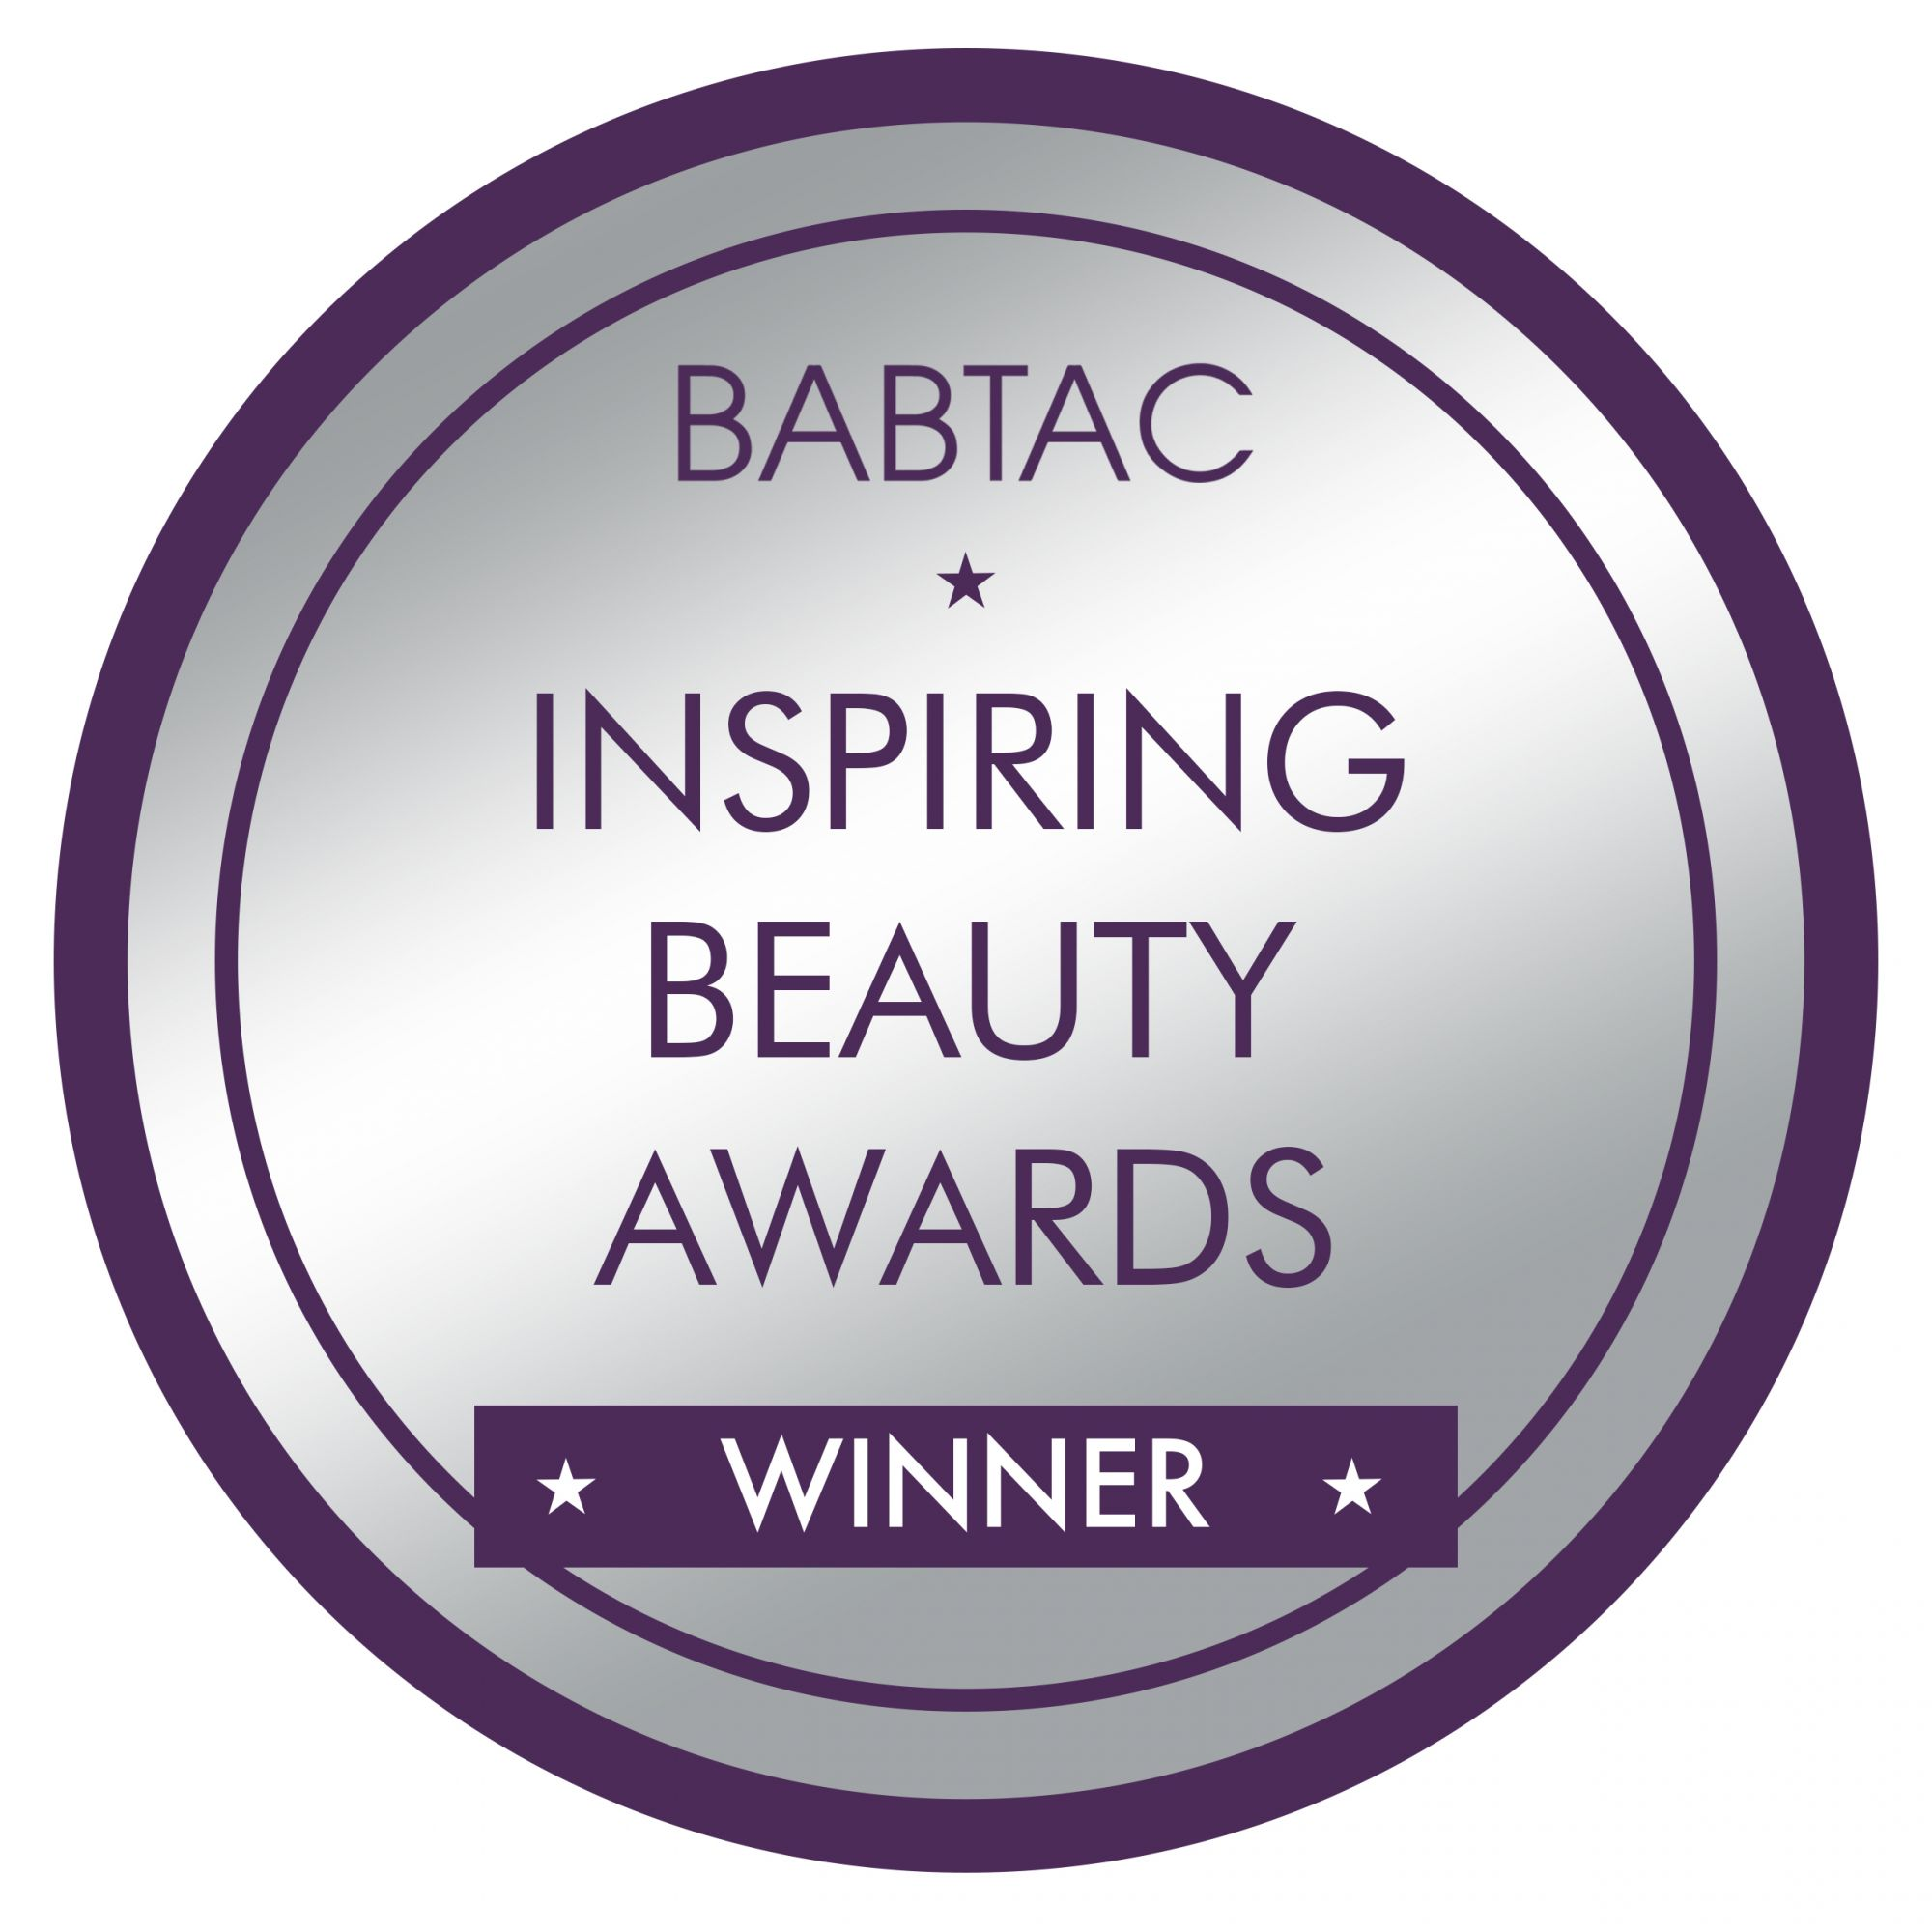 BABTAC Awards Logo Winner v5